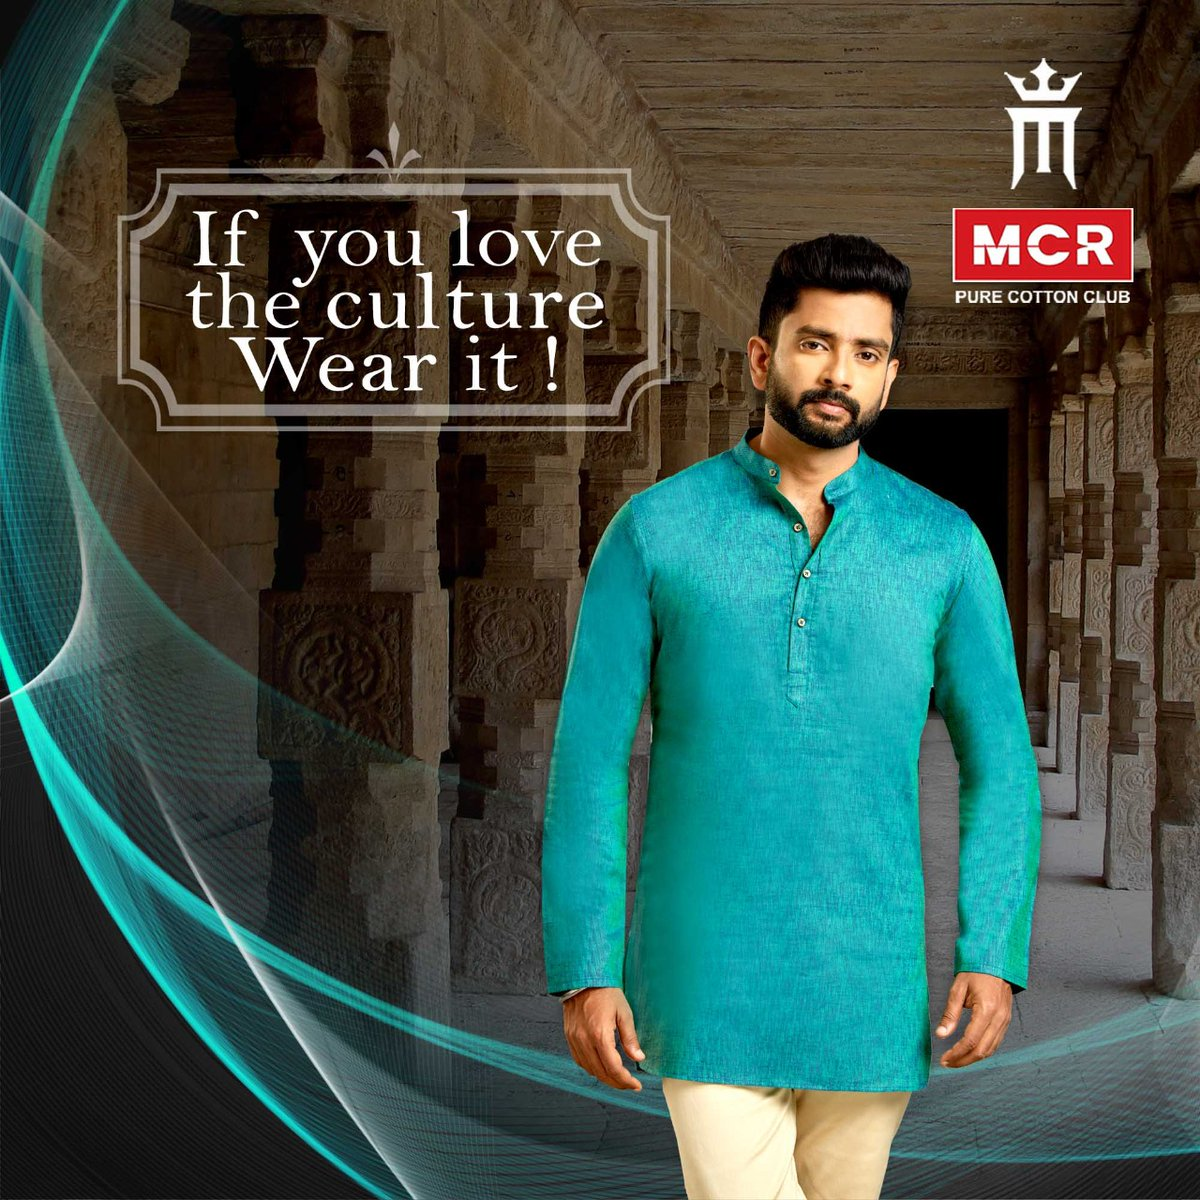 Speak of your treasured culture with what you wear! MCR presents premium Indian wears in a range of spectacular shades. #indianculture #traditionalattire #mensfashion #look #mensclothing #mensweardaily #clothing #stylish #indiantraditionalwear #mensfashionpost #luxury  #MCRpic.twitter.com/c6Tt3KjzOQ